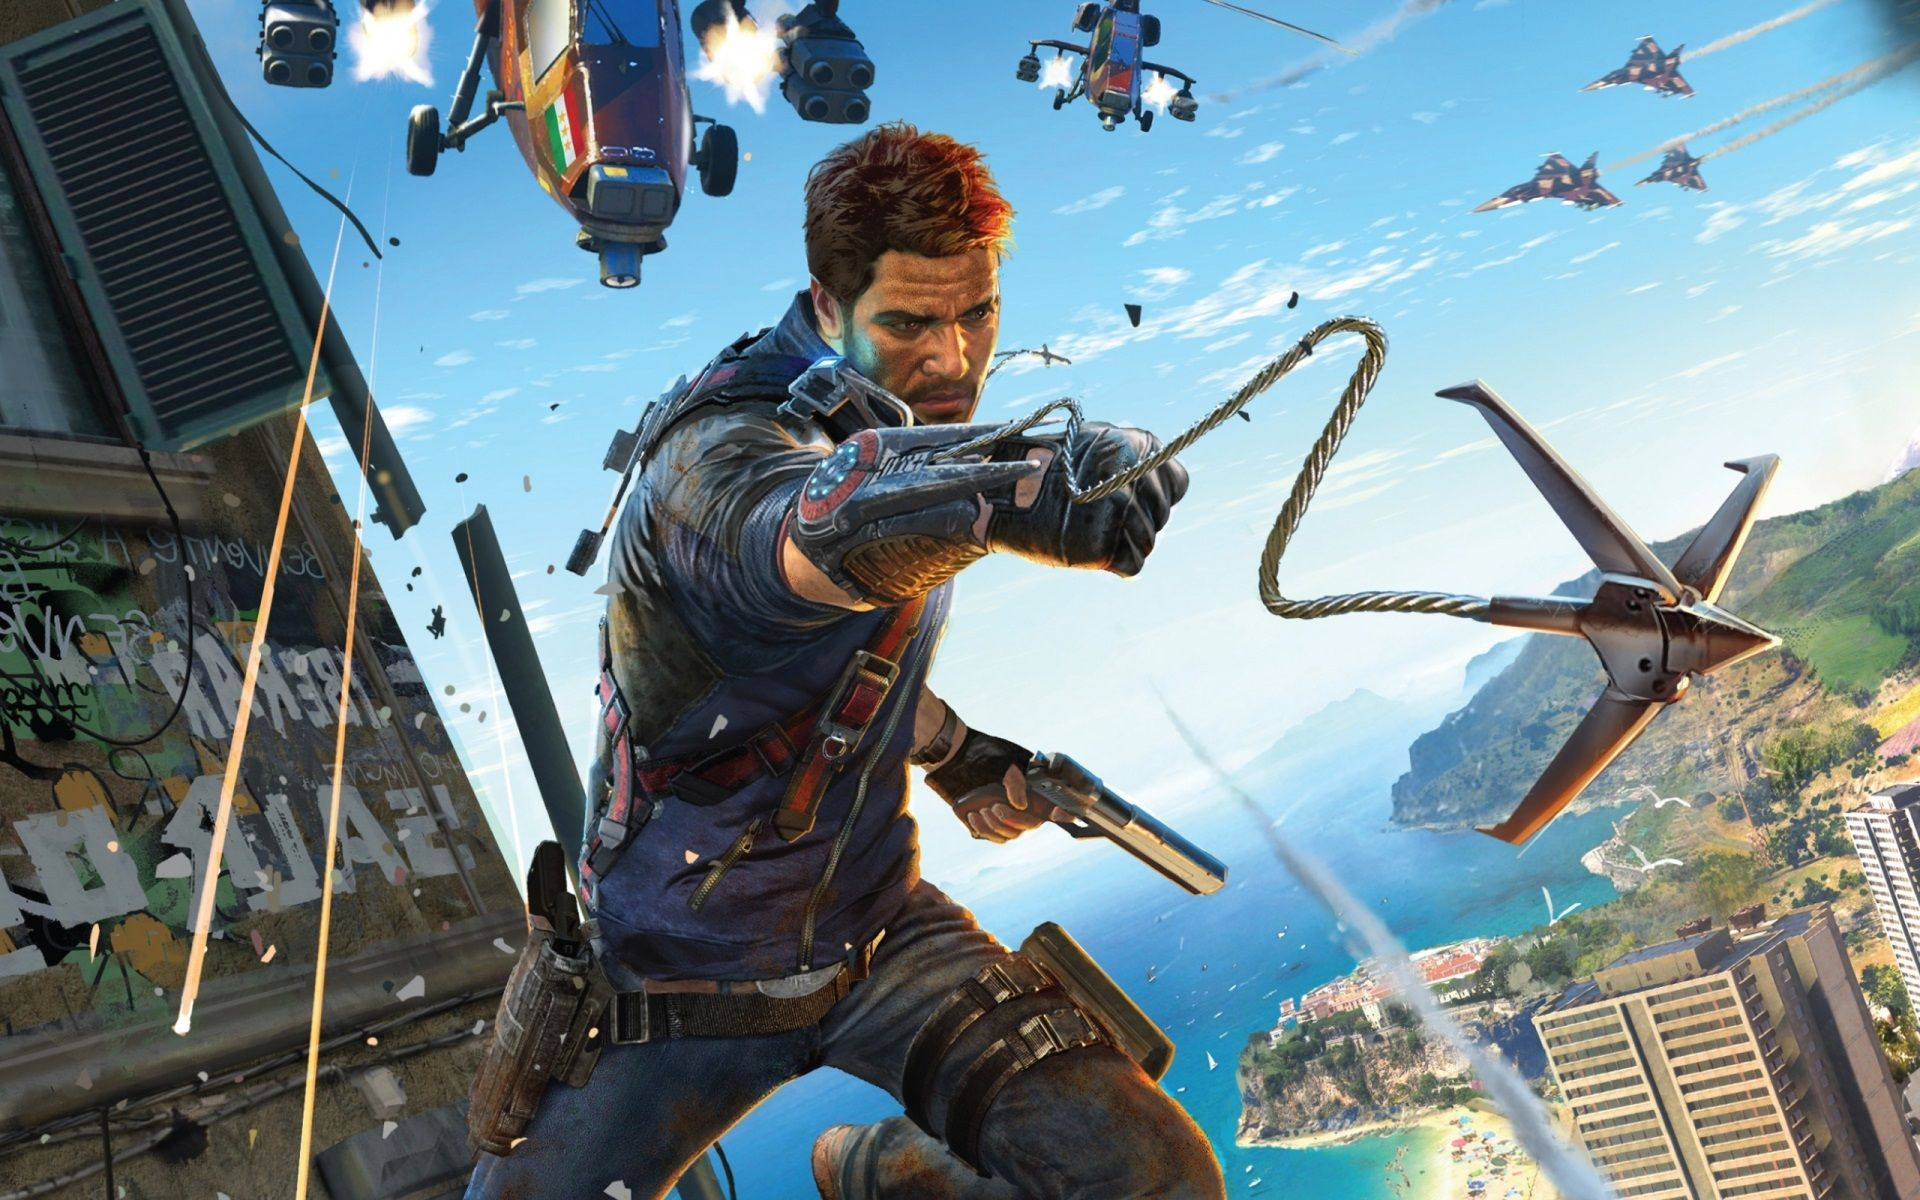 1920x1200 Just Cause 3 Full Hd Just Cause 3 Photography Games Games